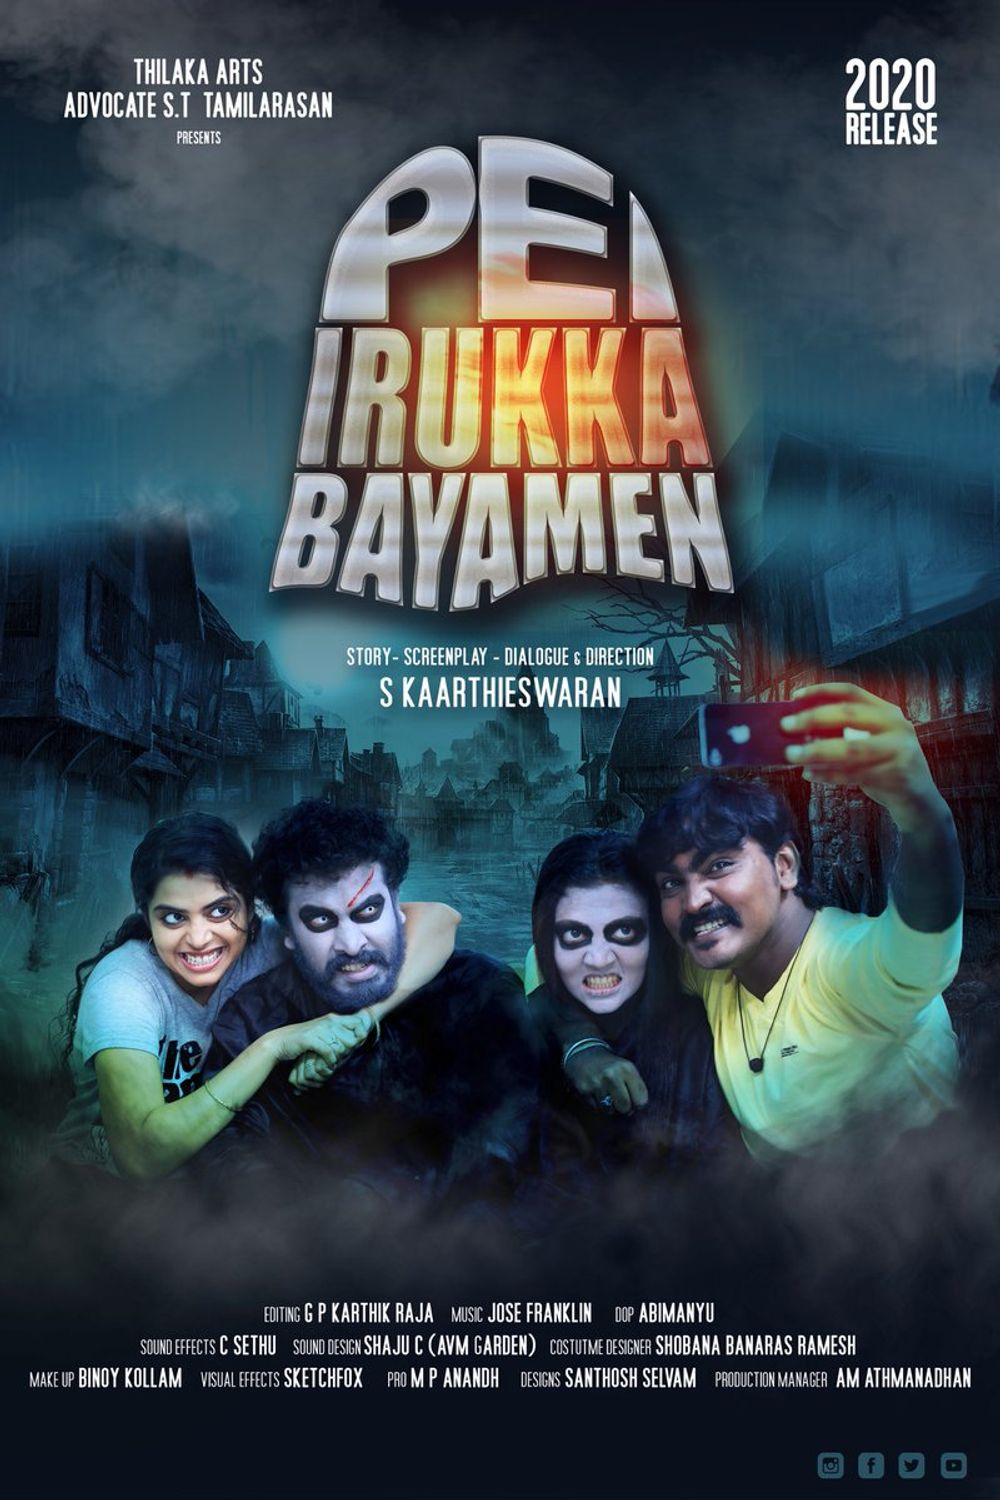 Pei Irukka Bayamen 2021 Tamil 720p pDVDRip 1.1GB Download